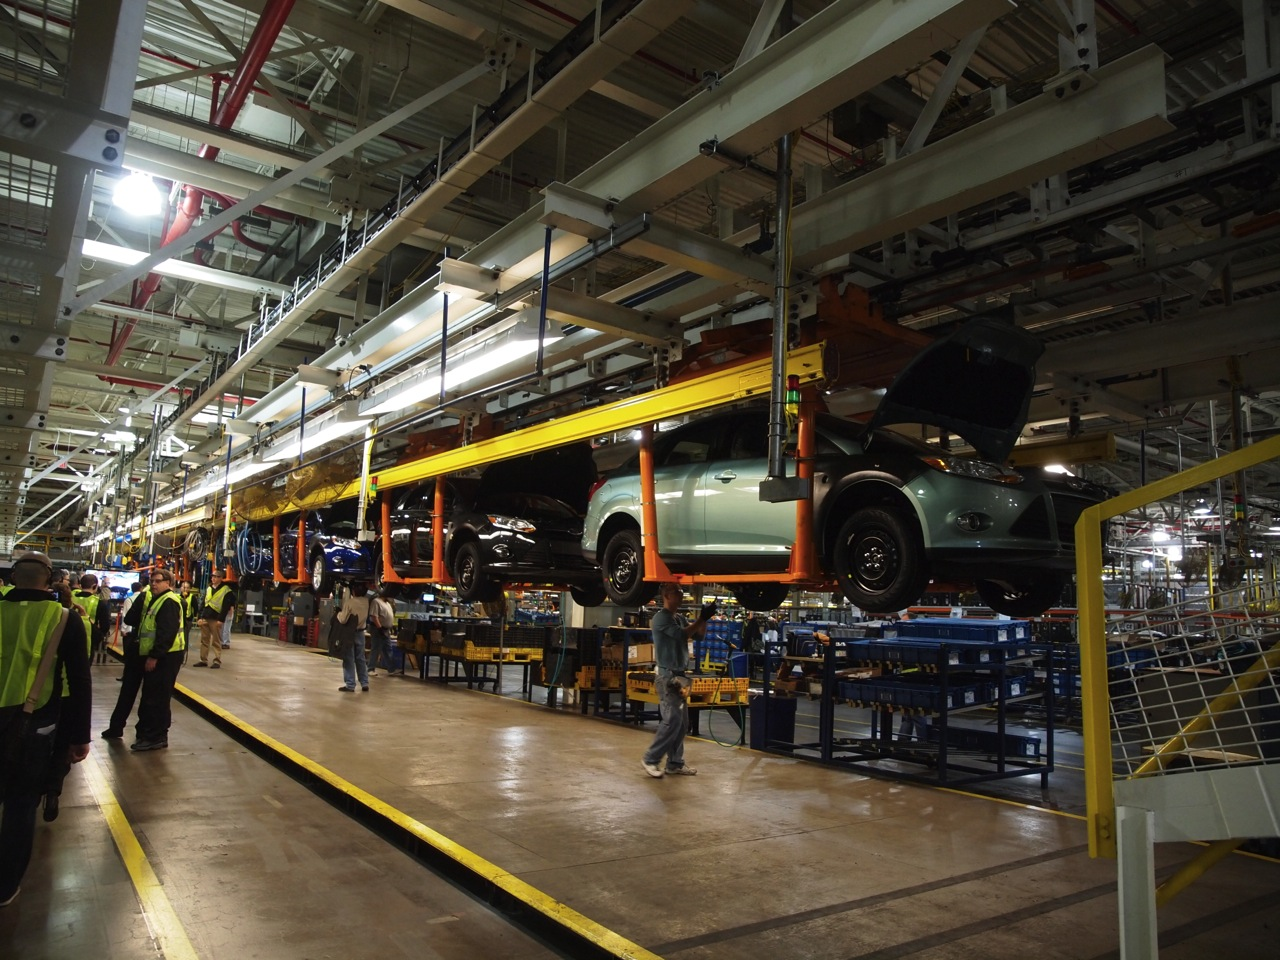 Ford focus assembly plants #2